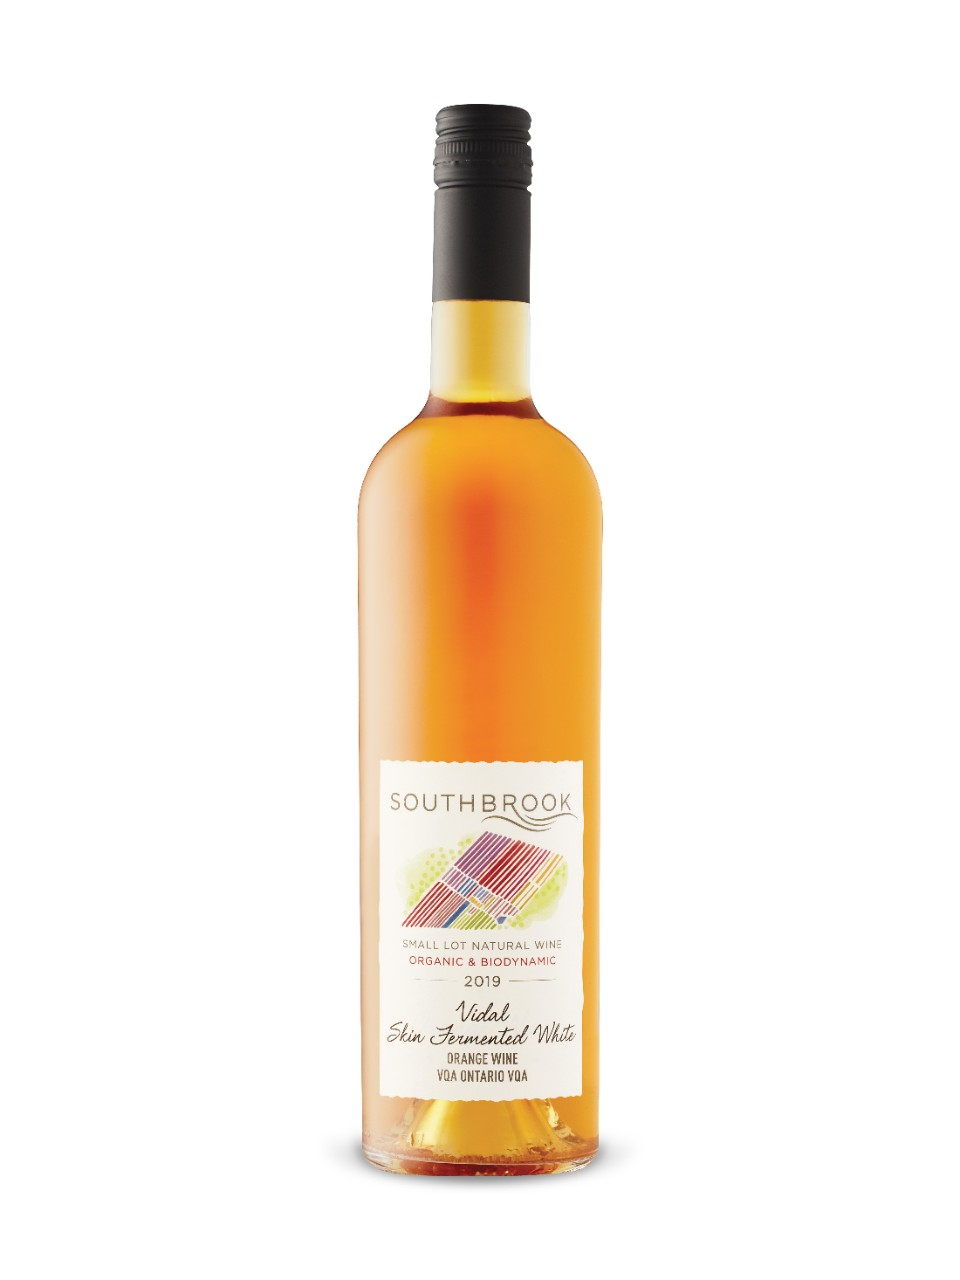 Southbrook Vidal Skin Fermented White Orange Wine from LCBO